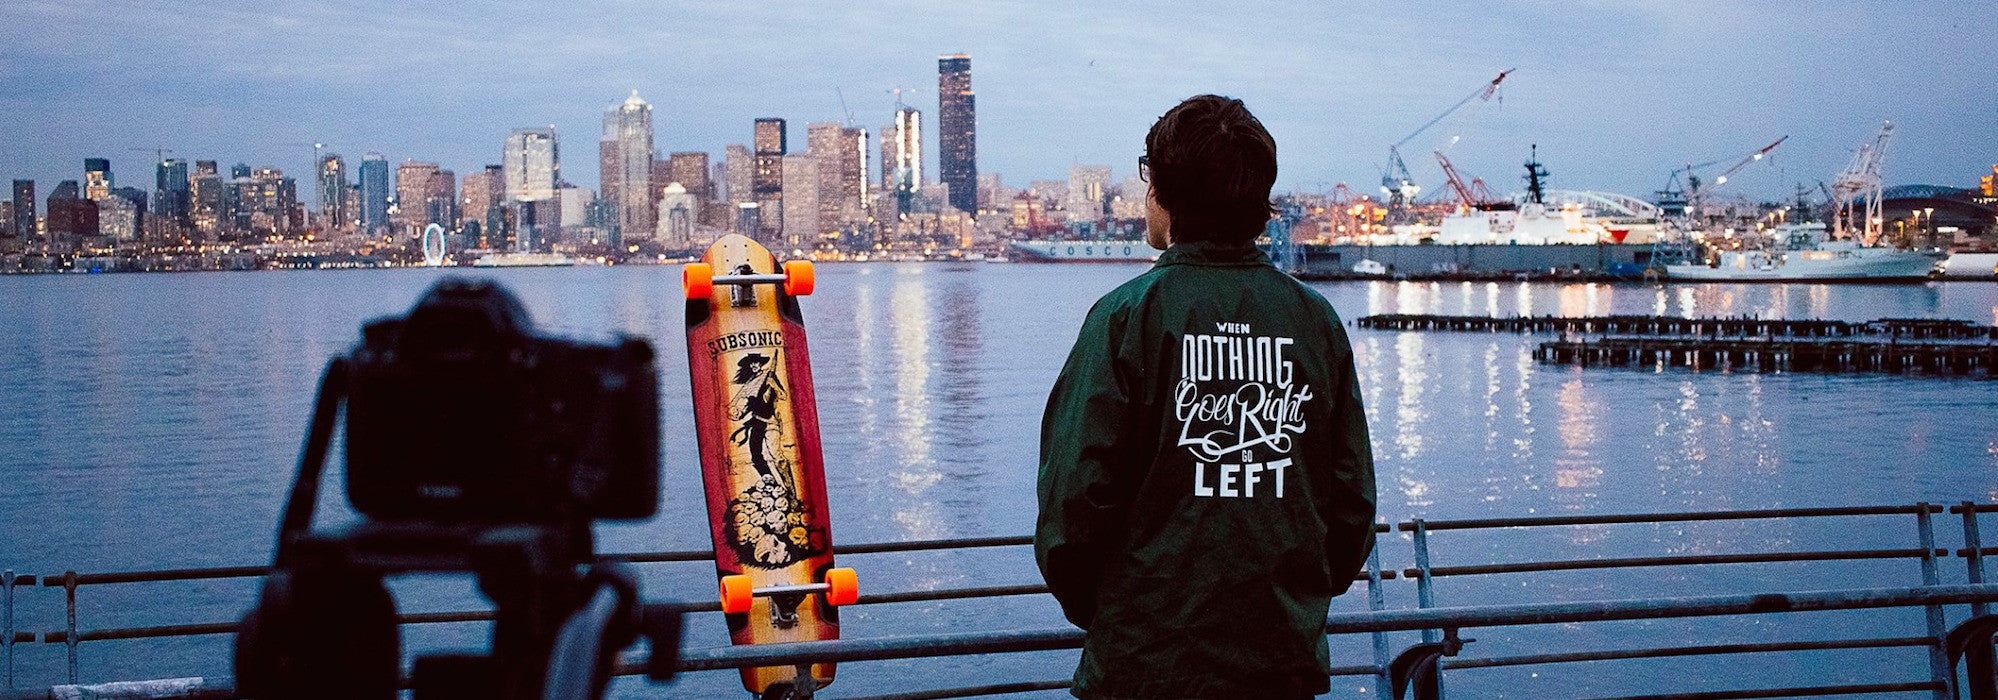 Subsonic Skateboards Shadow Seattle skyline